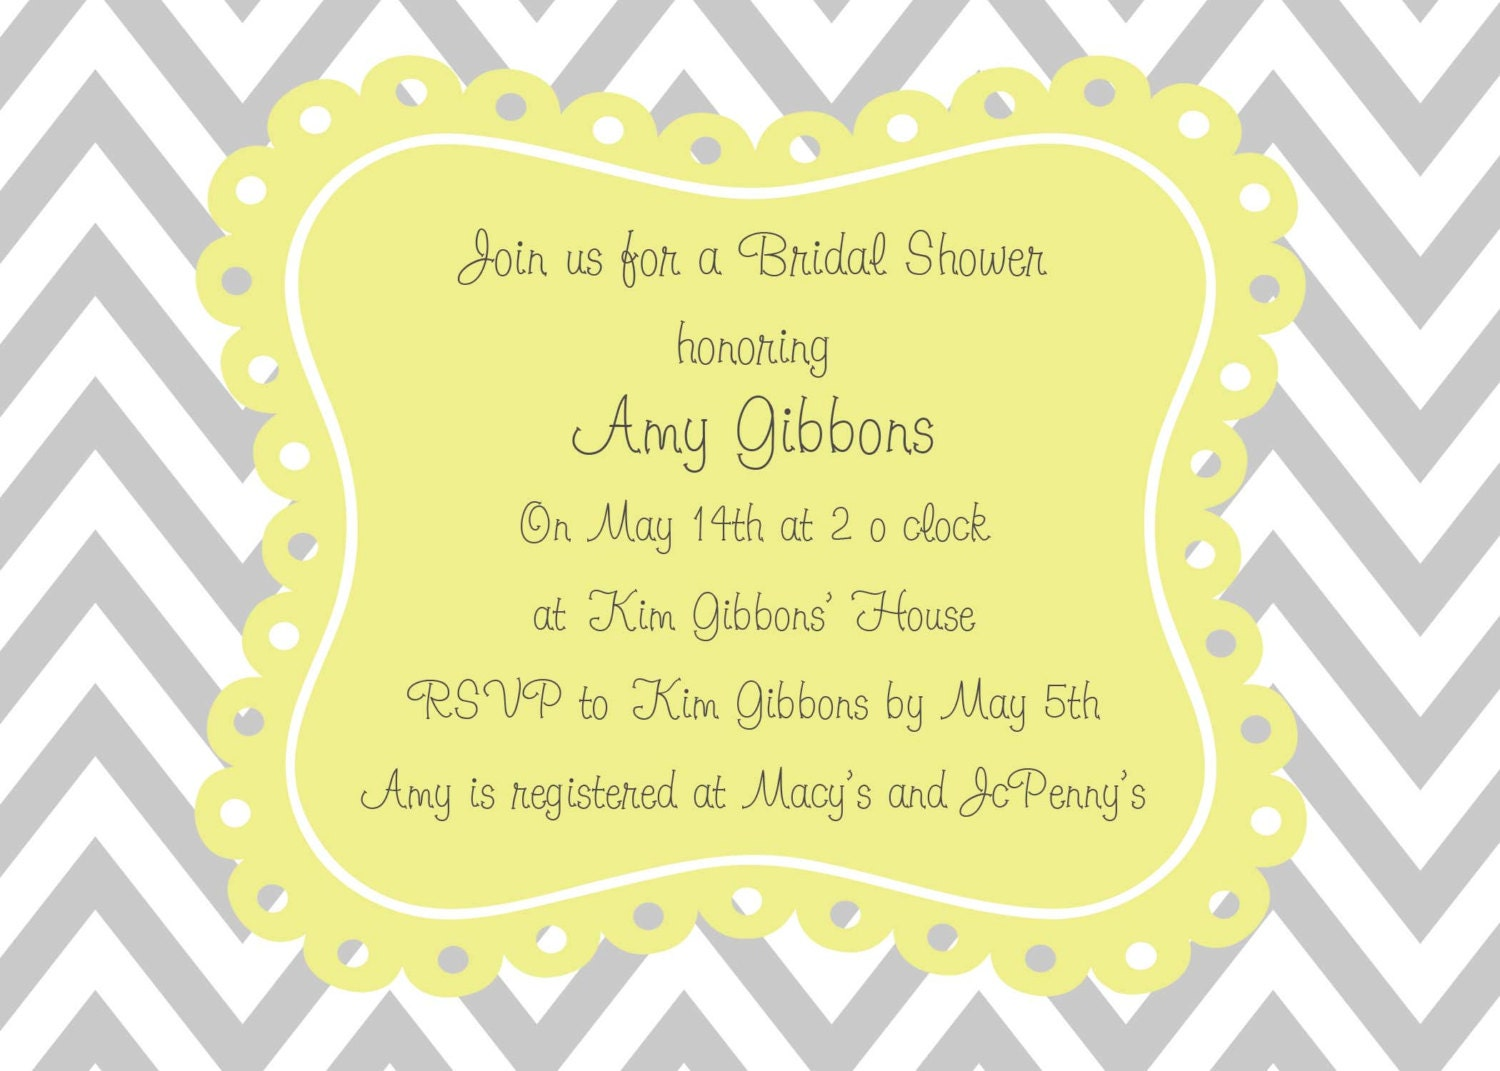 Wedding Shower Gift Card Phrases : Request a custom order and have something made just for you.